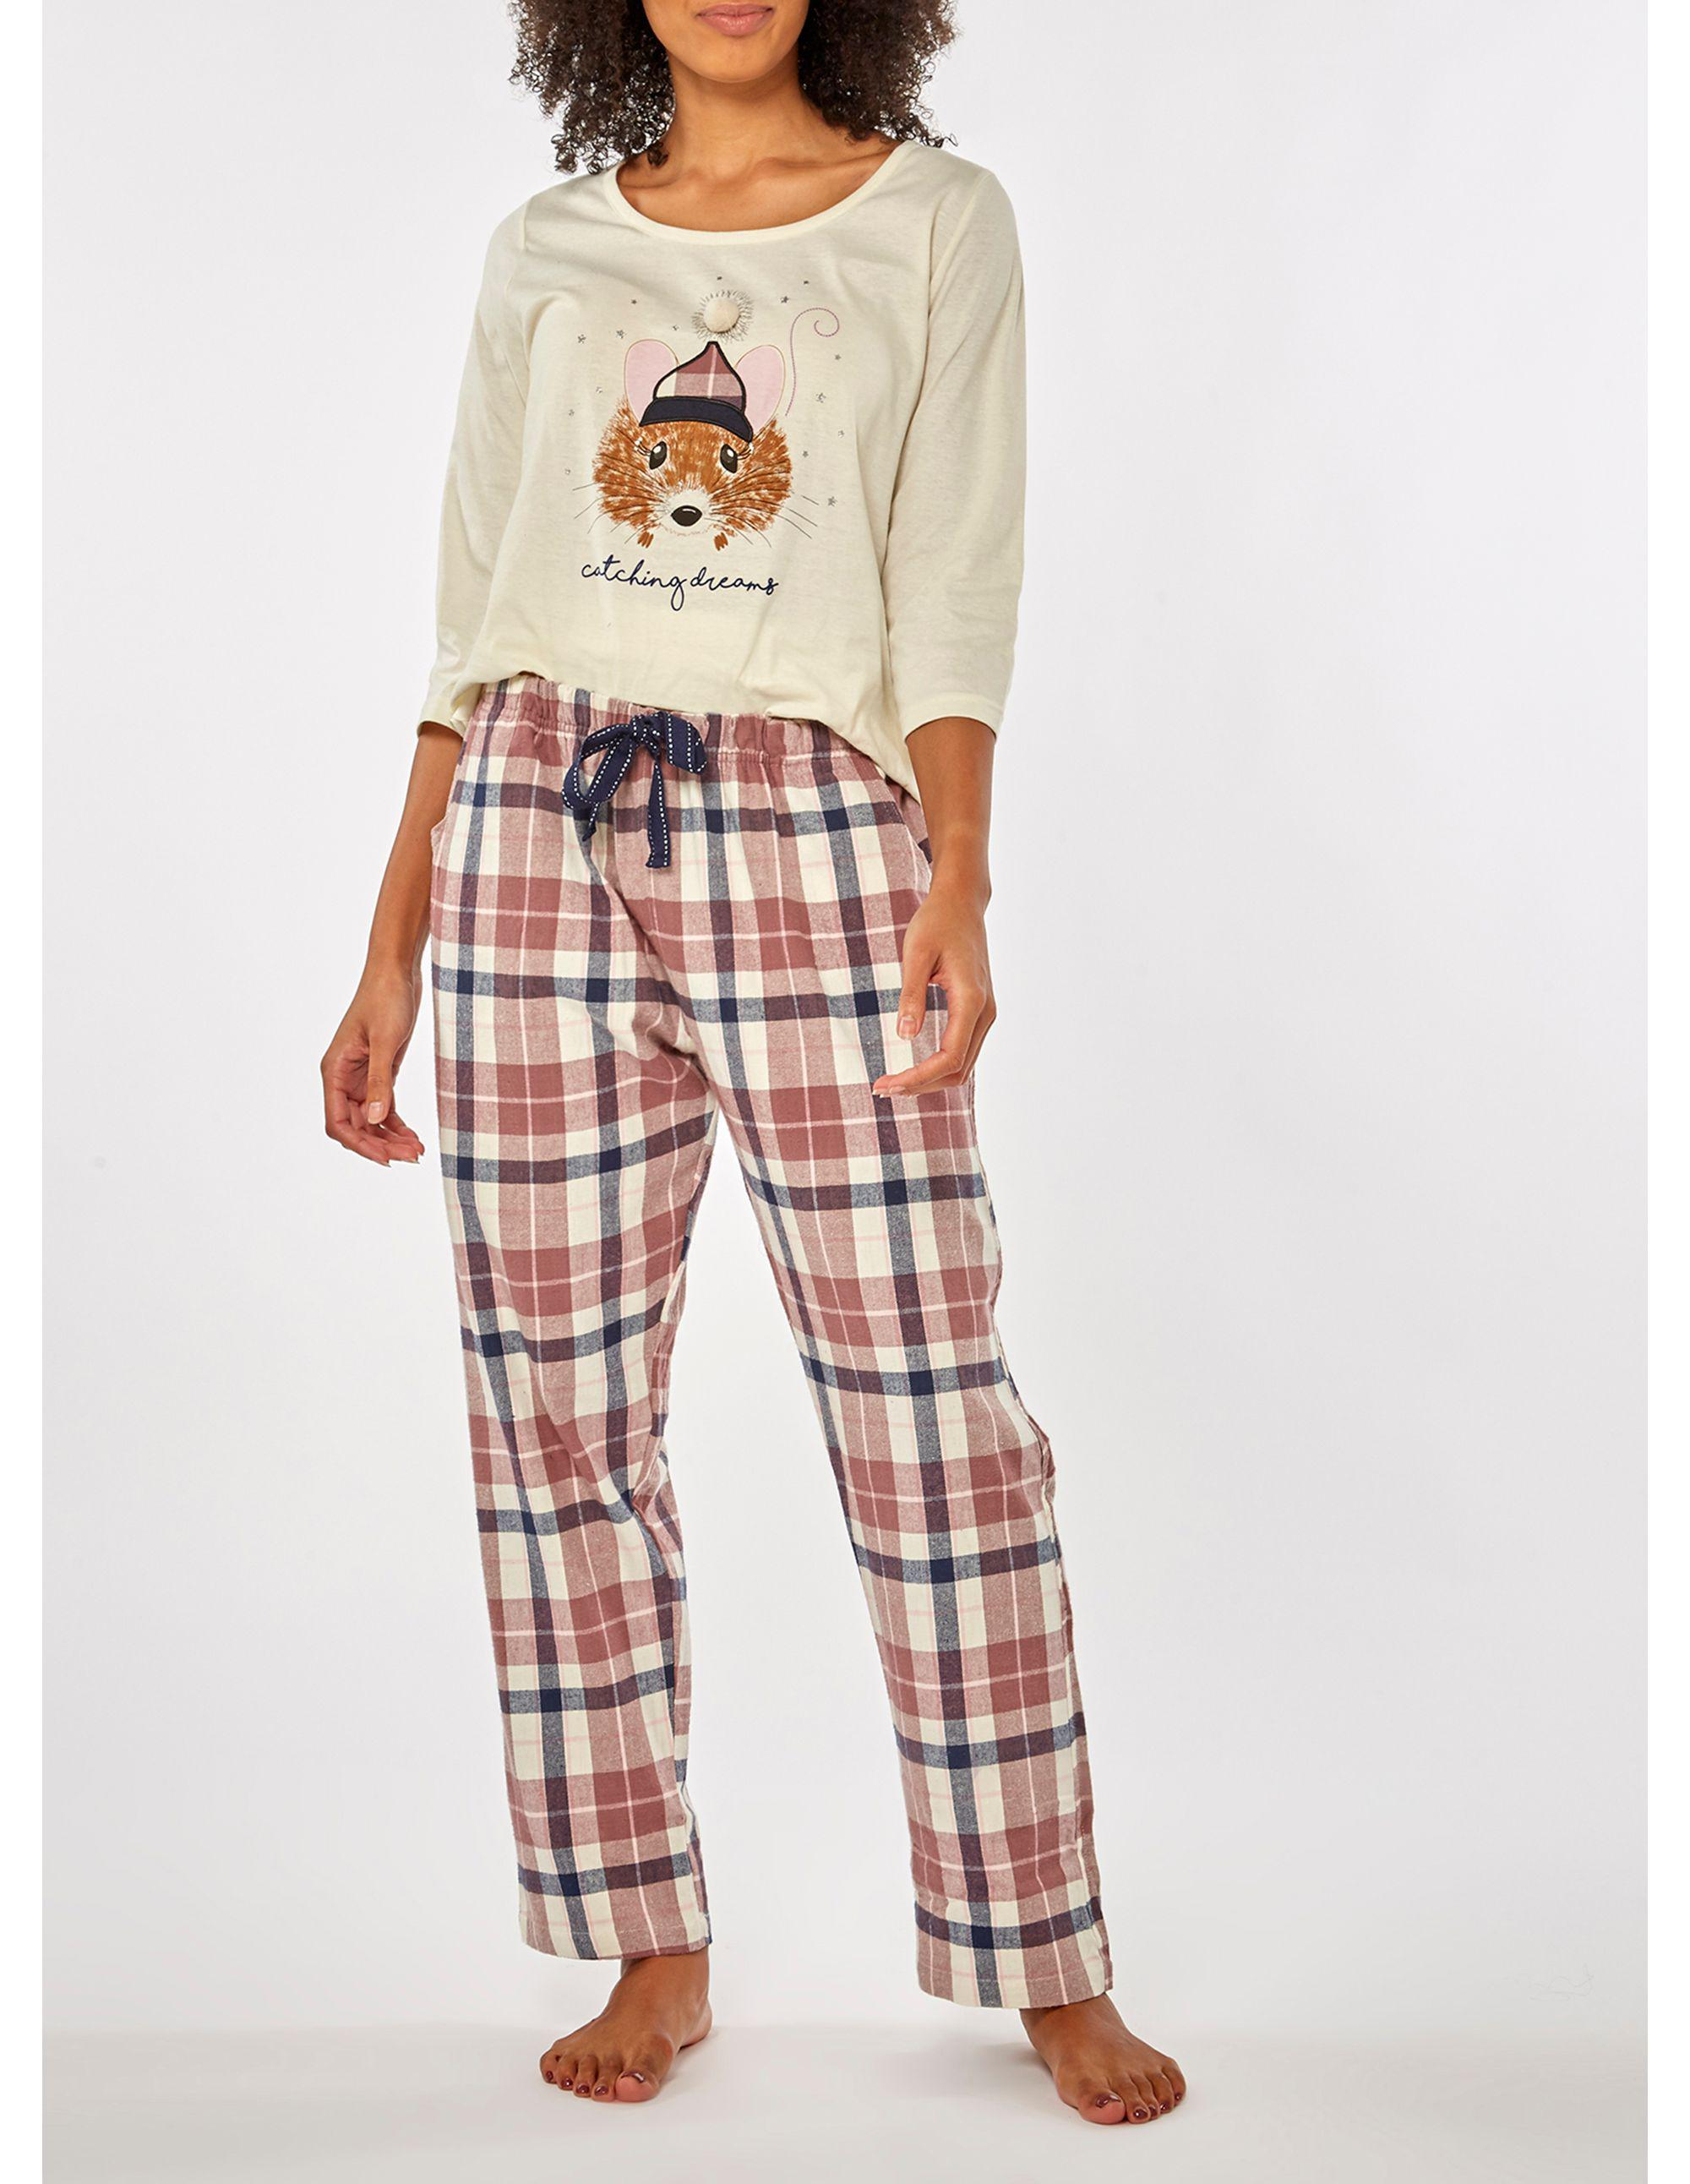 c4cdc00a37 Dorothy Perkins. Women s Natural Oatmeal Catching Dreams Pyjama Set. £20  £10 From Debenhams